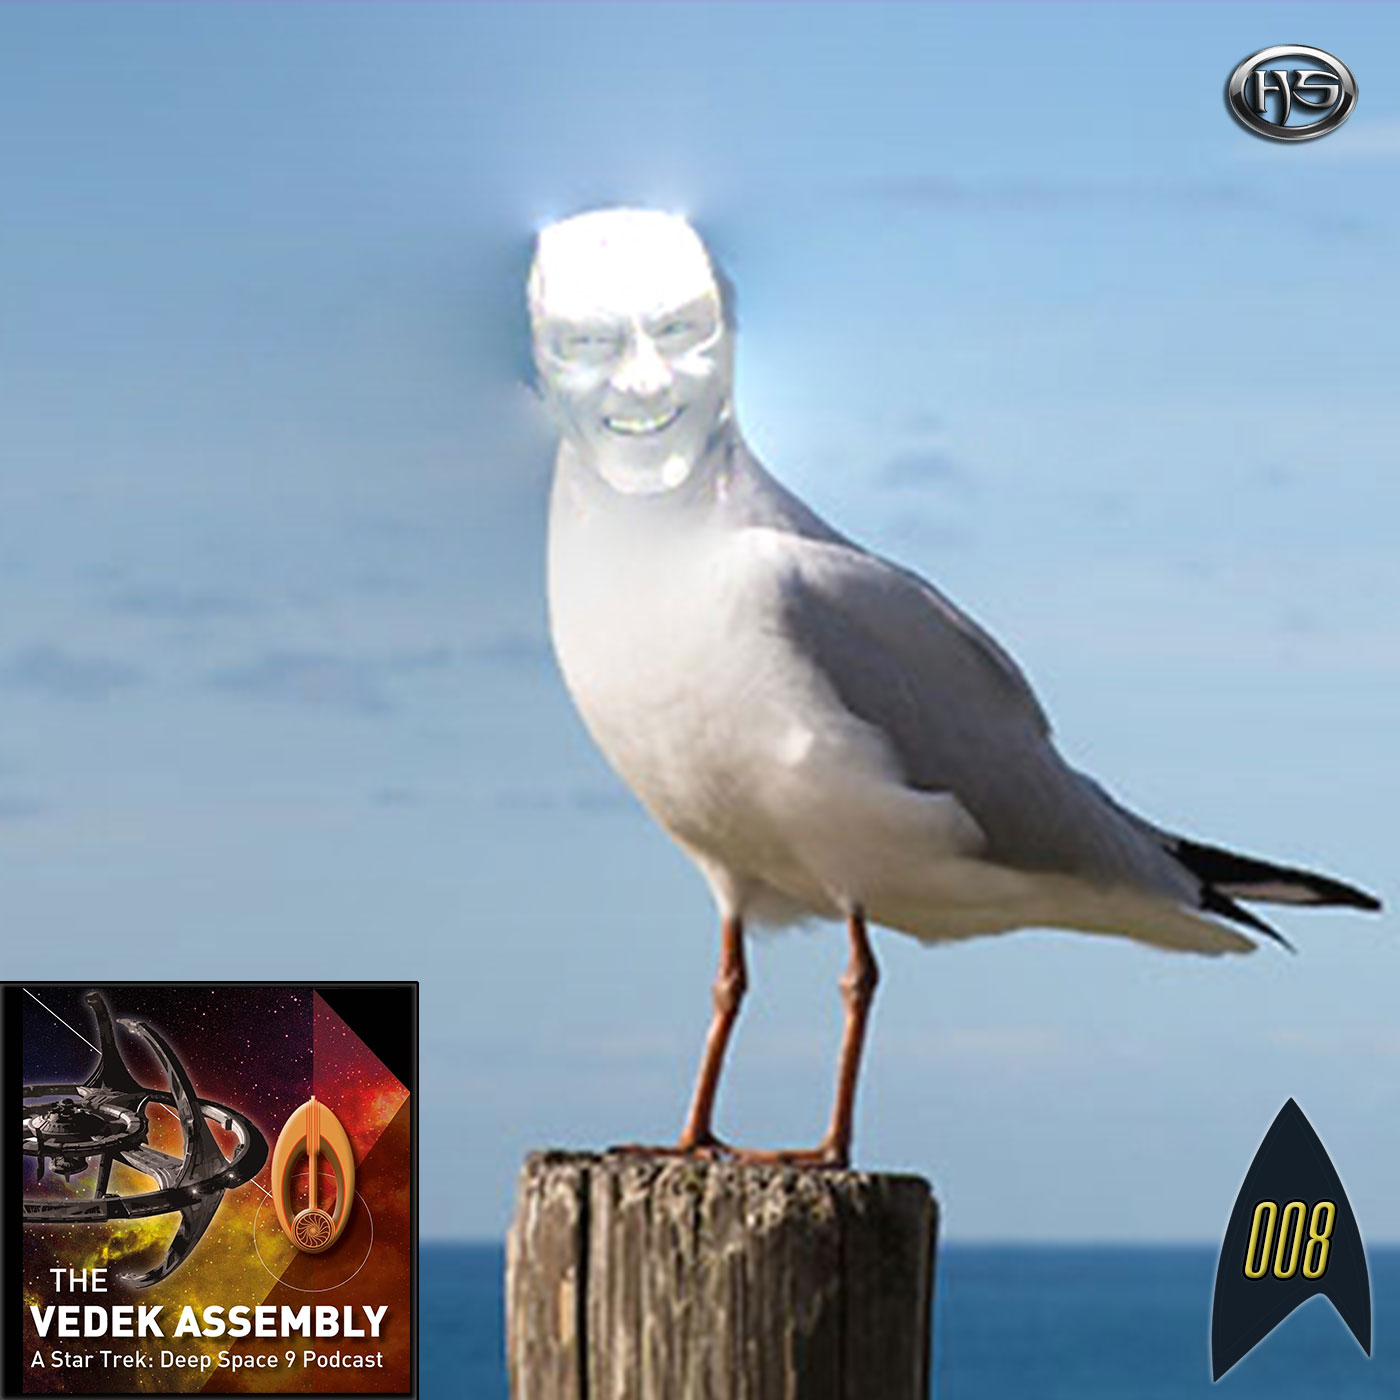 The Vedek Assembly Episode 8